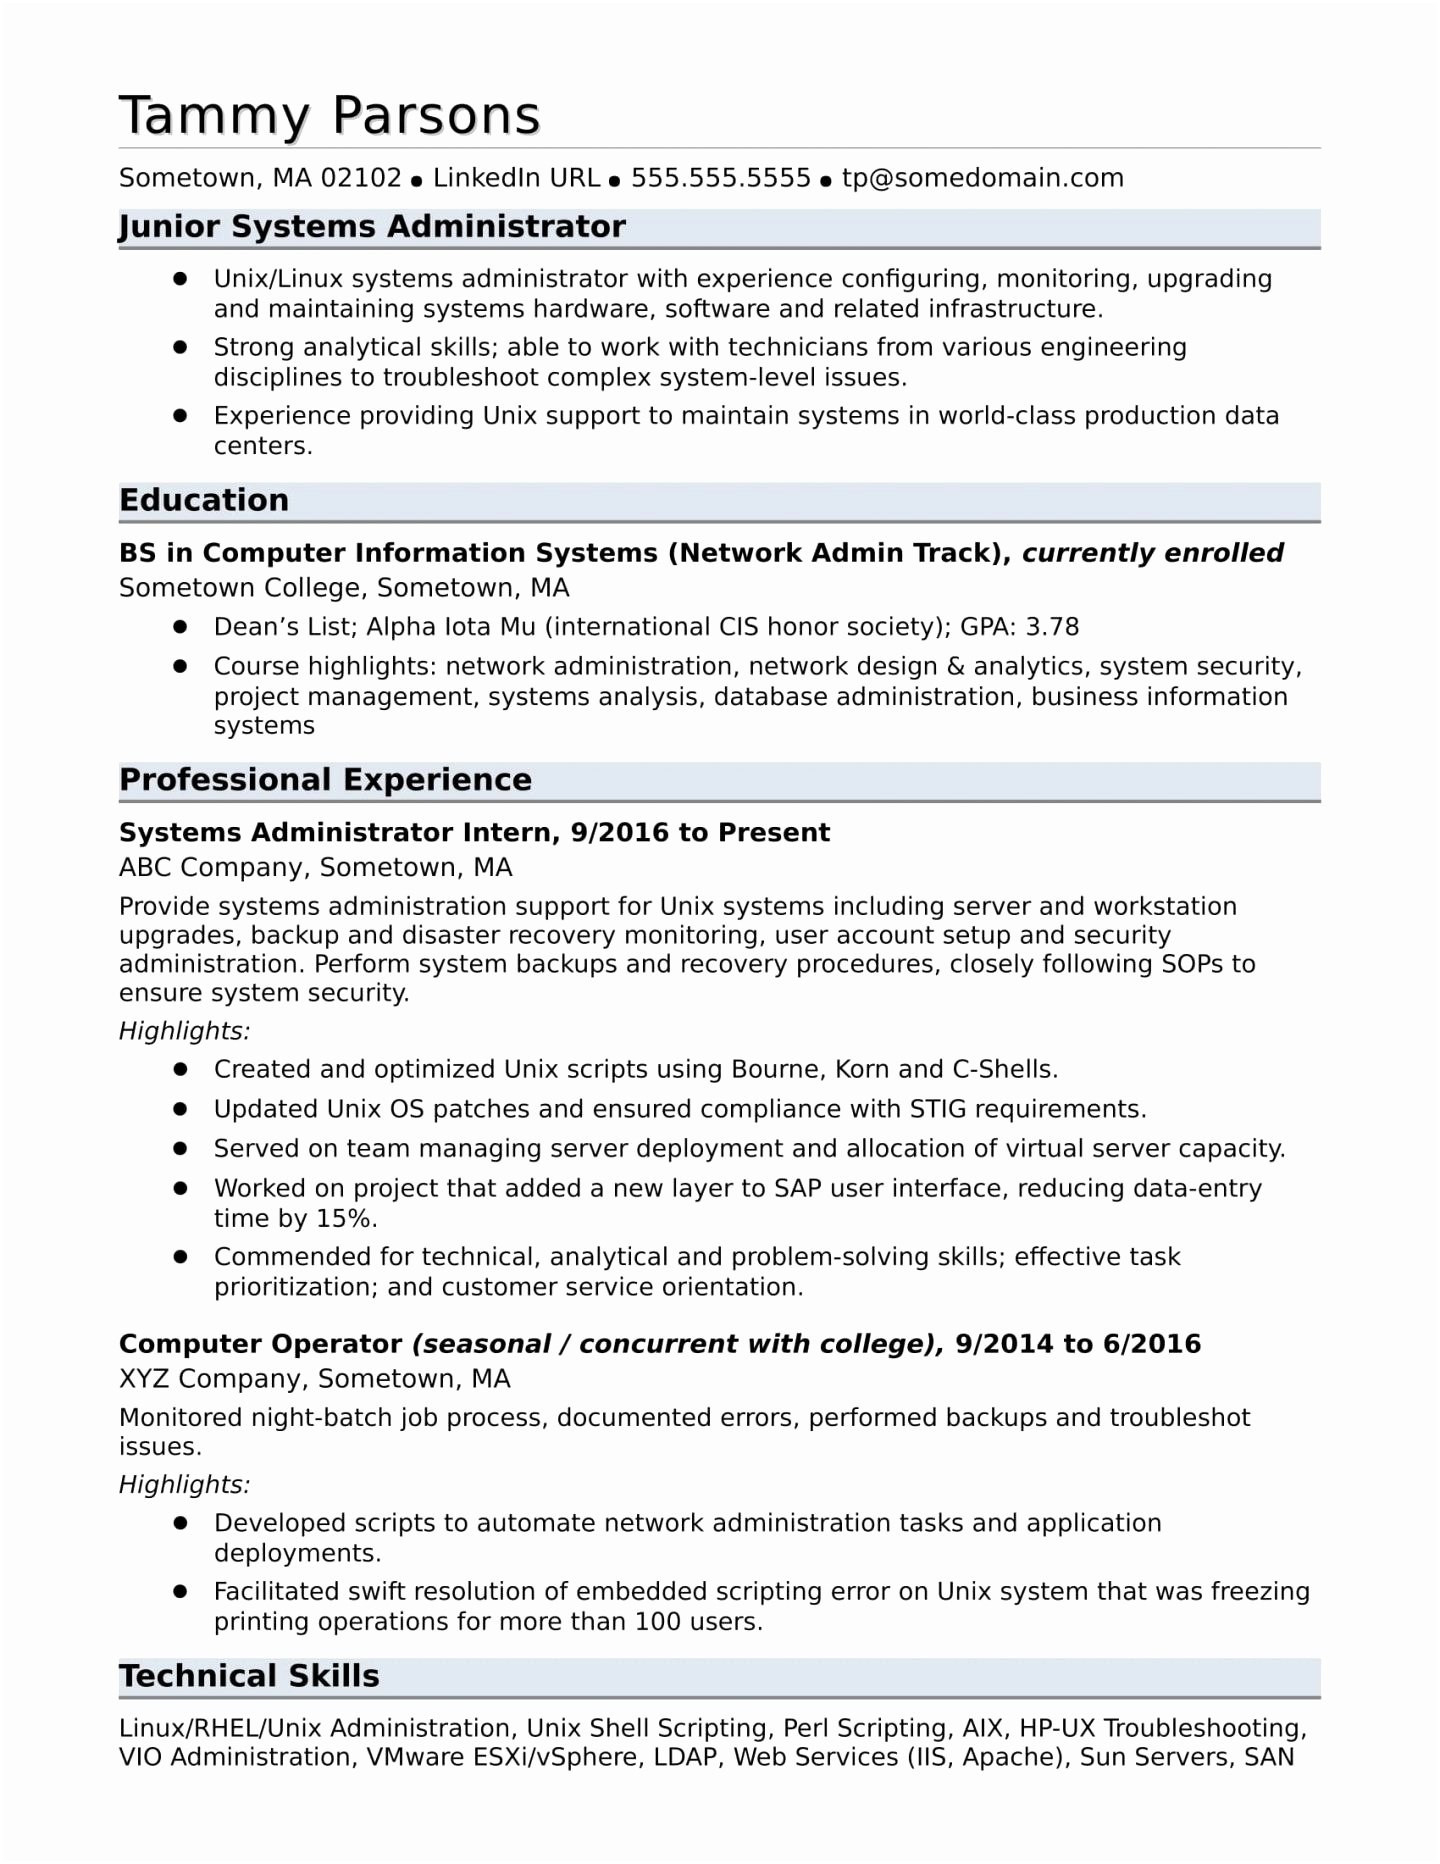 Software Developer Resume Template - Junior Web Developer Resume Utd Resume Template Unique Fishing